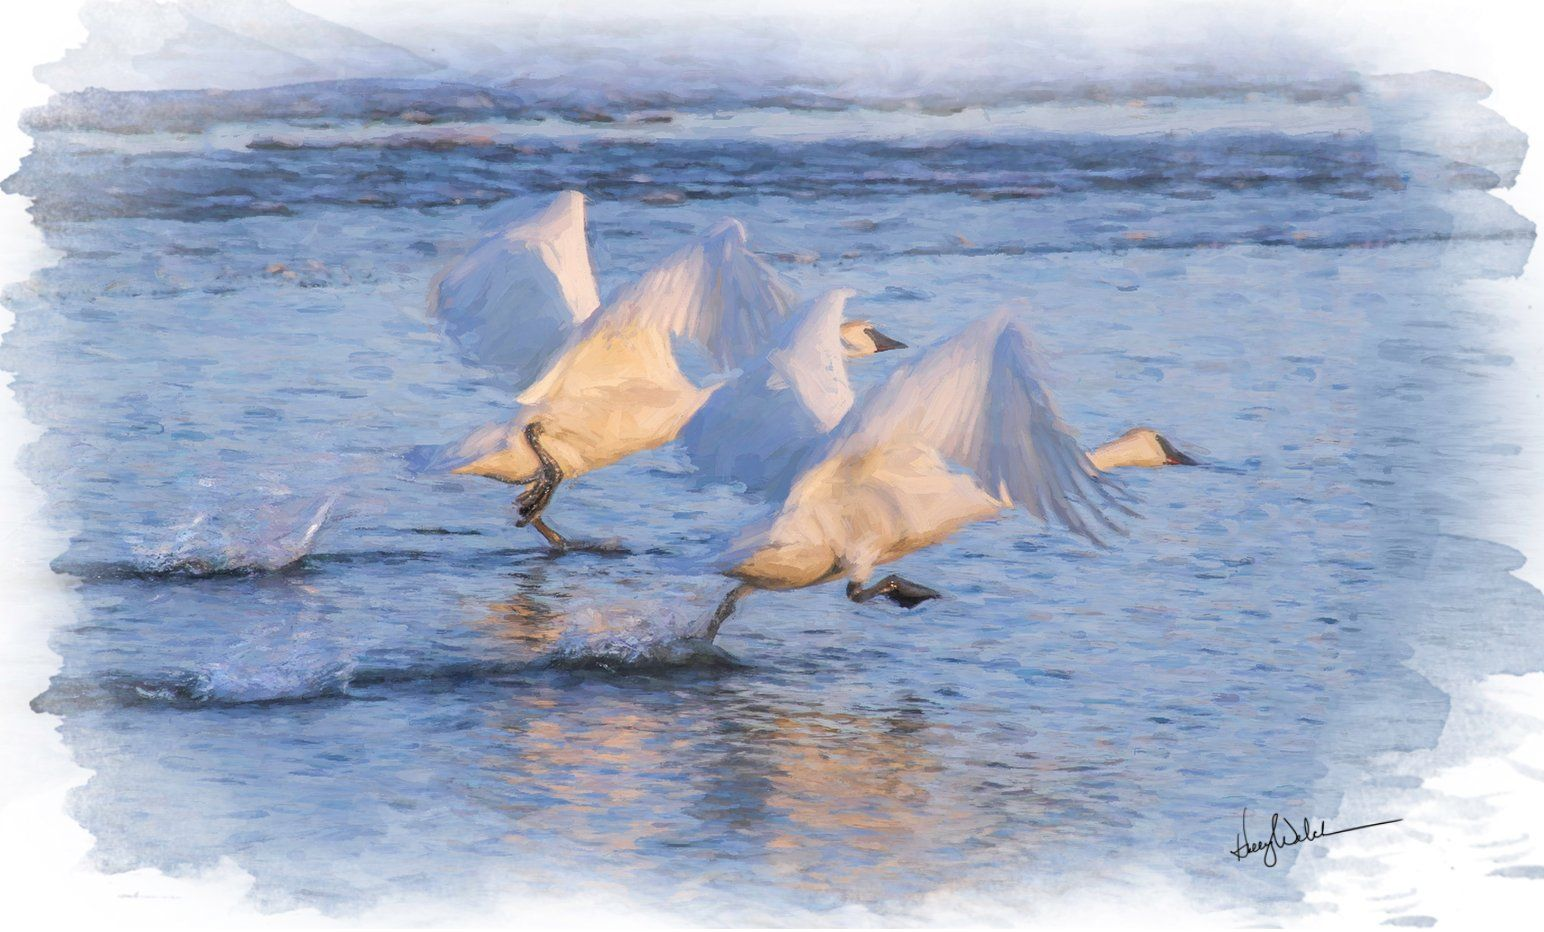 The Trumpeter Swan website has links to find out how to see Trumpeter Swans near you